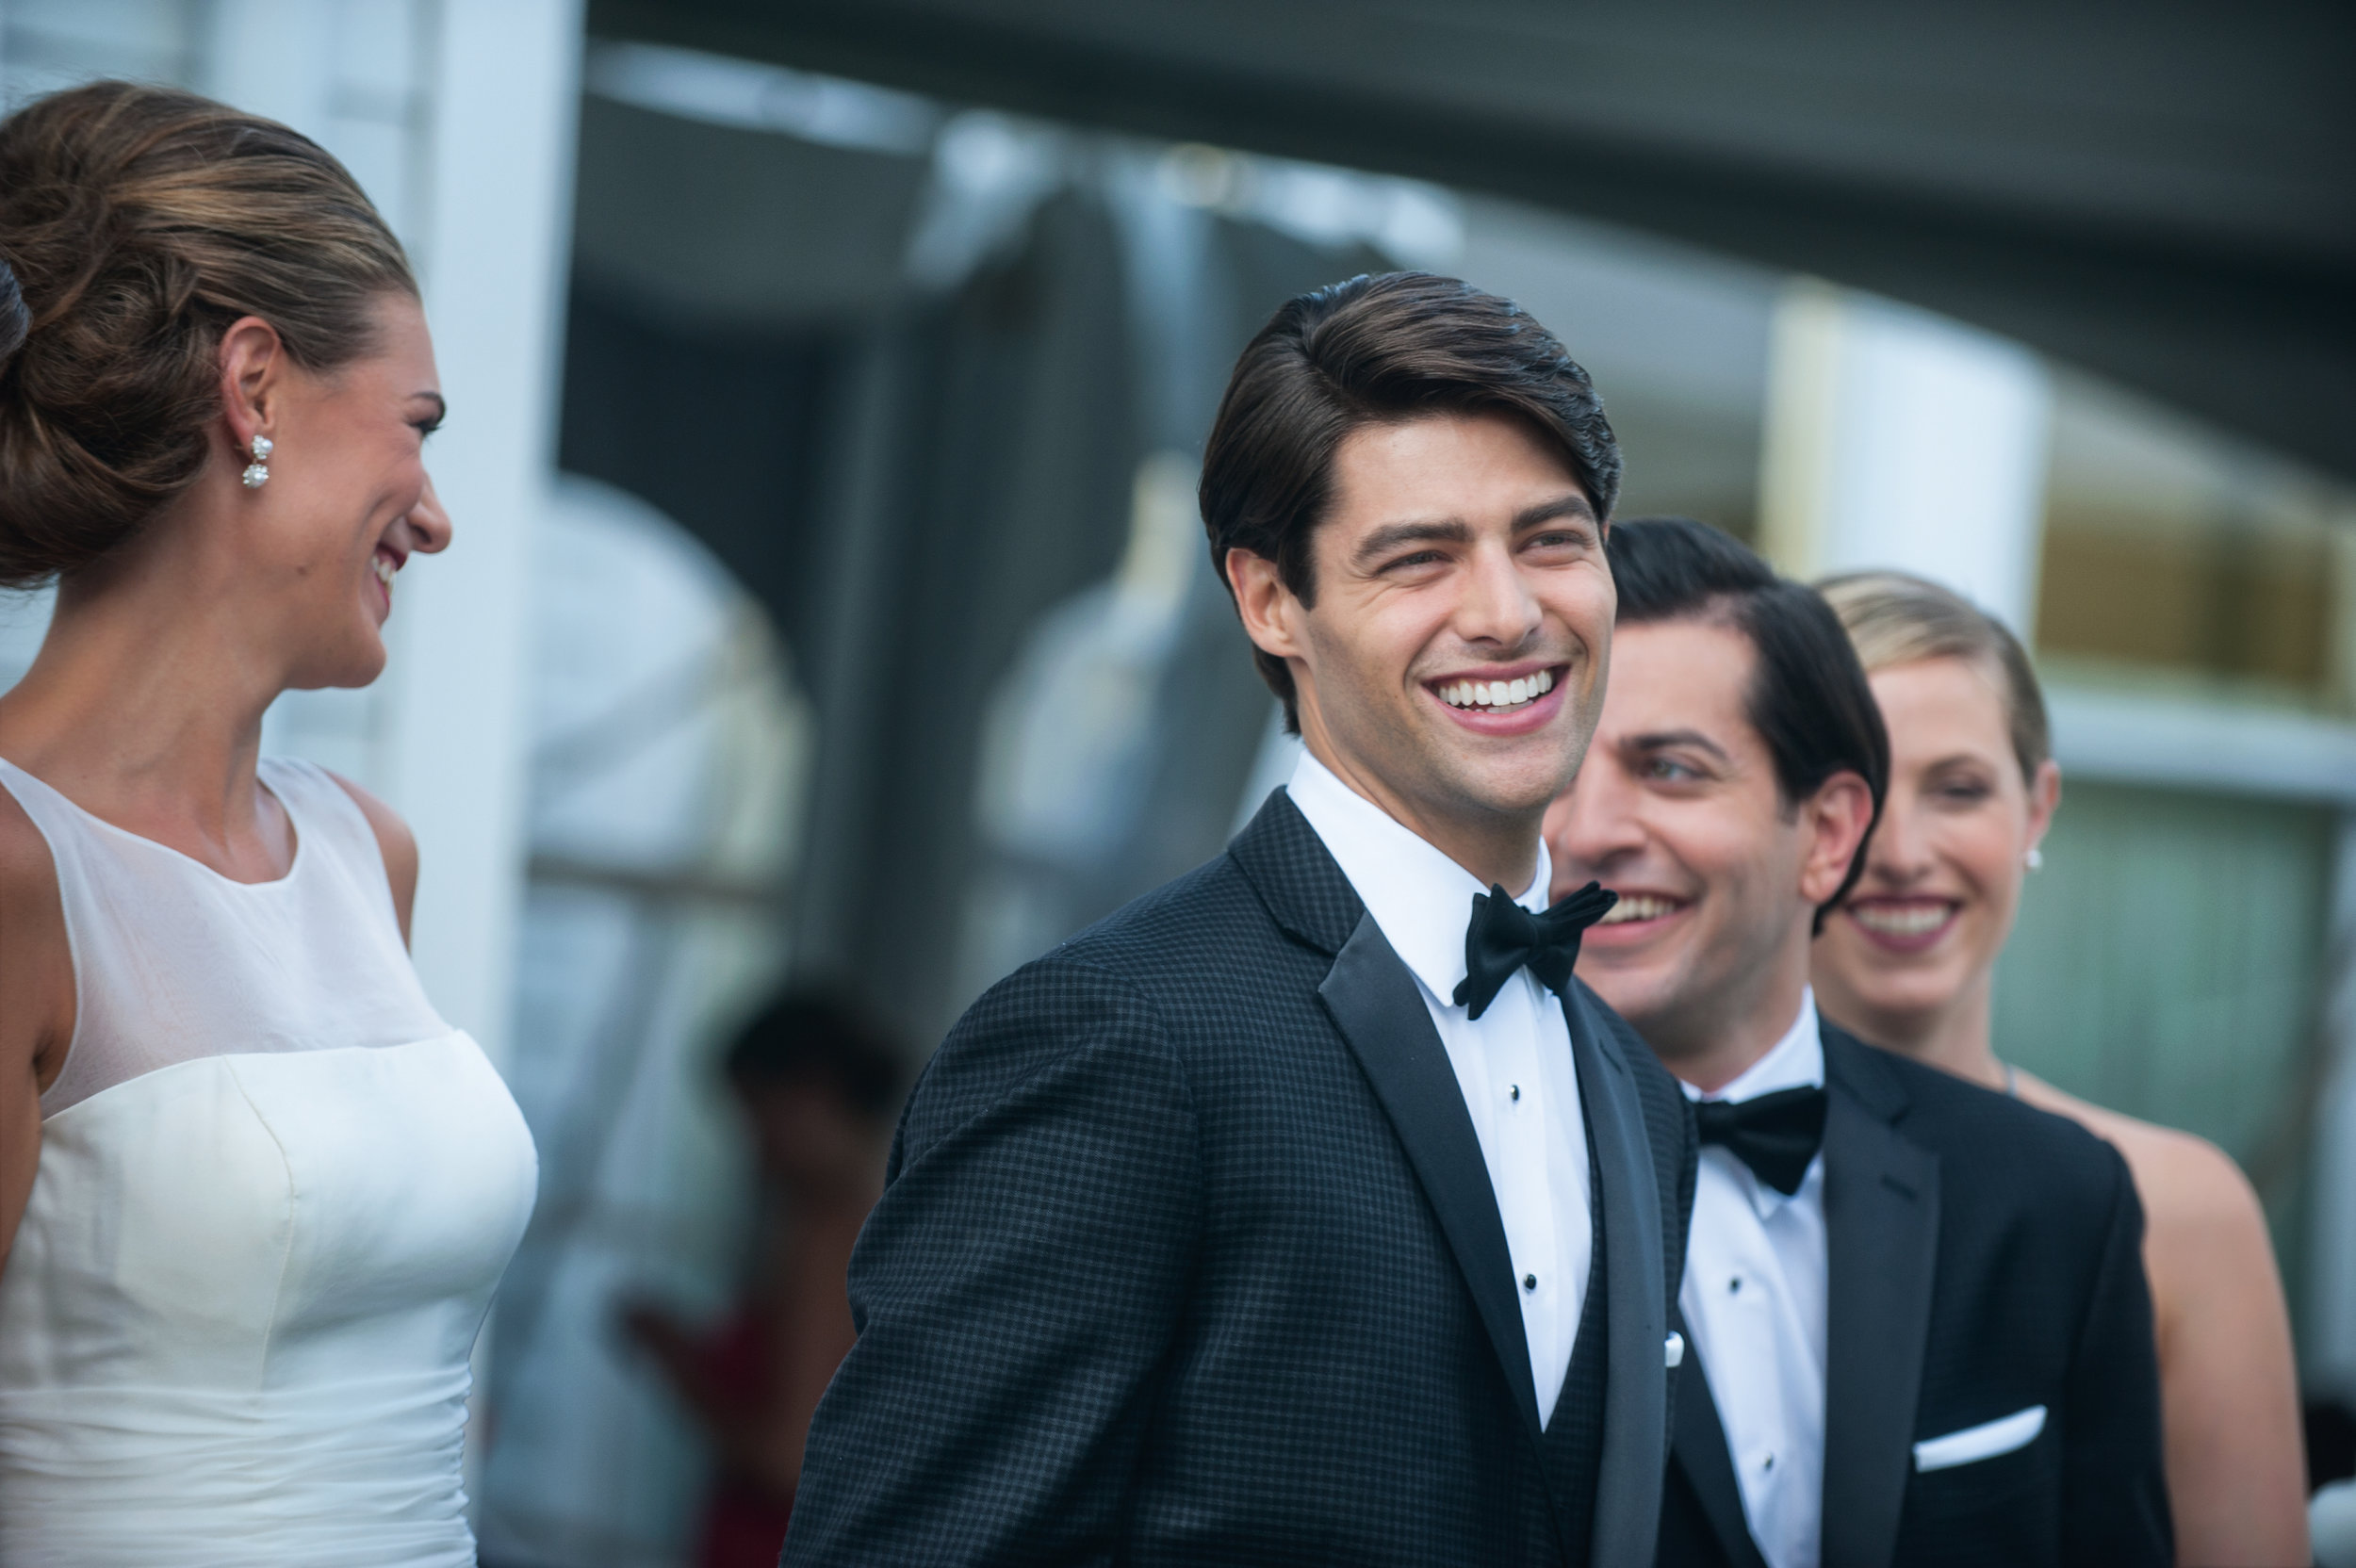 Tuxedos and Wedding Suits - Savvi Formalwear of Raleigh is proud to offer a wide variety of wedding suits and tuxedos for rental from top tuxedo designers, Michael Kors, Calvin Klein, Allure, Ike Behar, Savvi and Ralph Lauren.